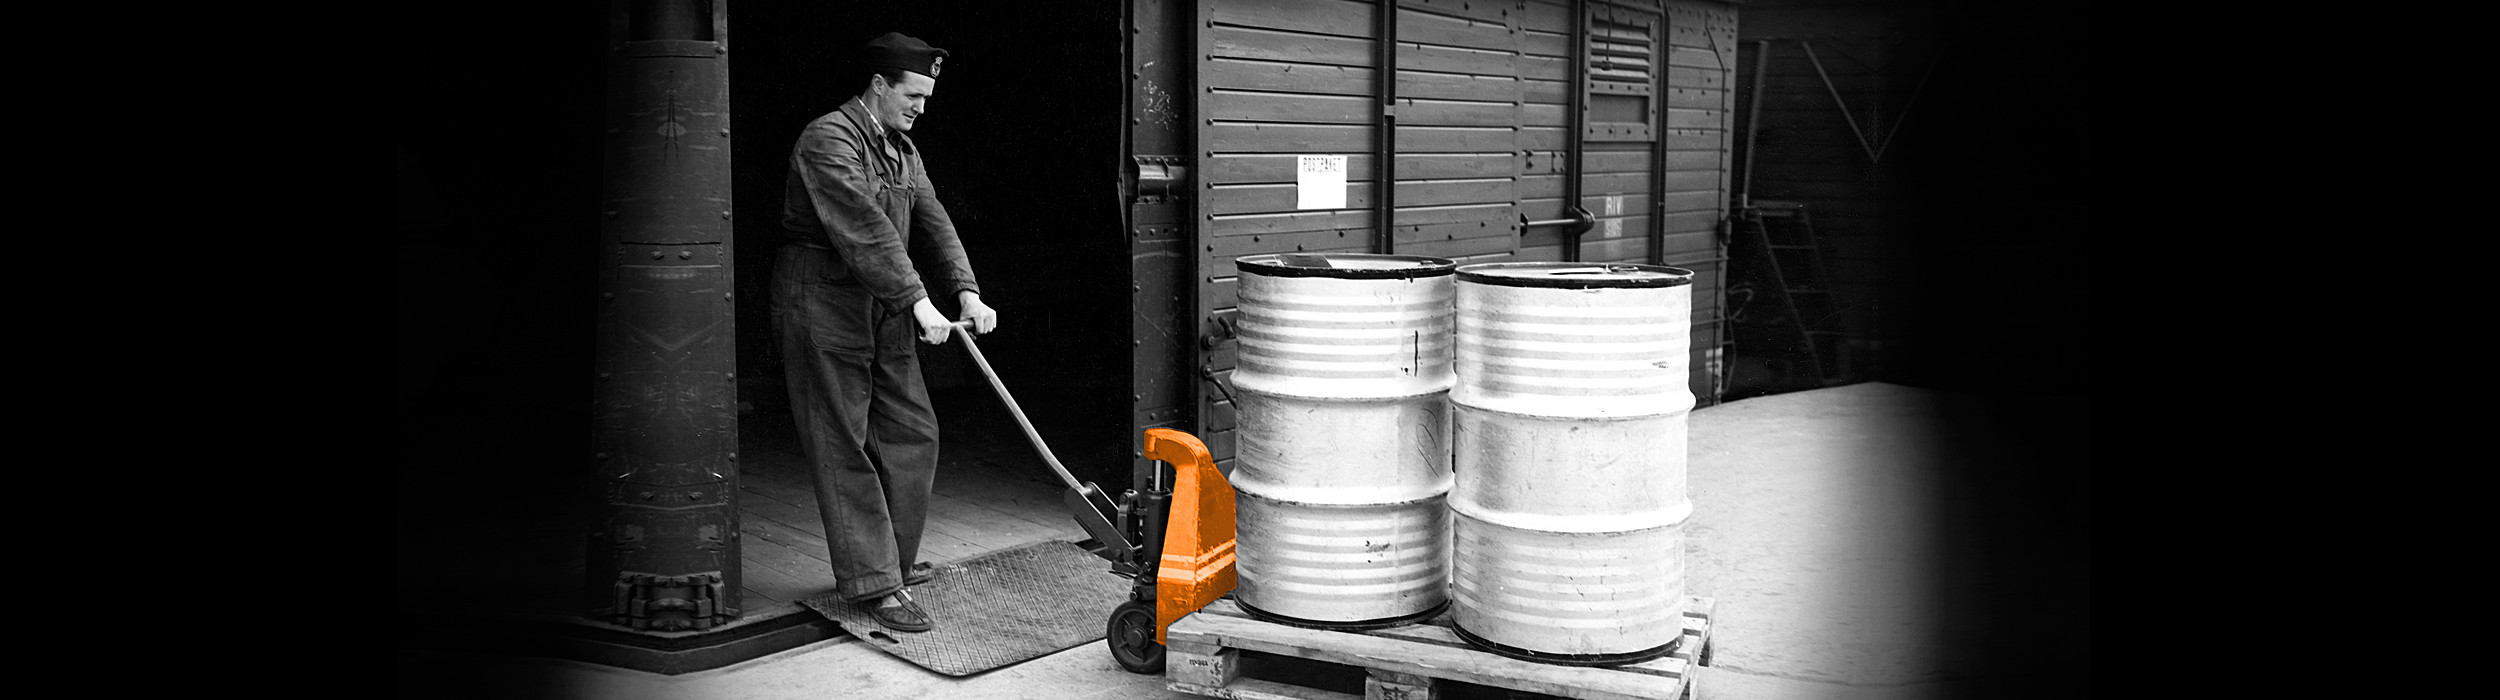 History image of man using a hand pallet truck